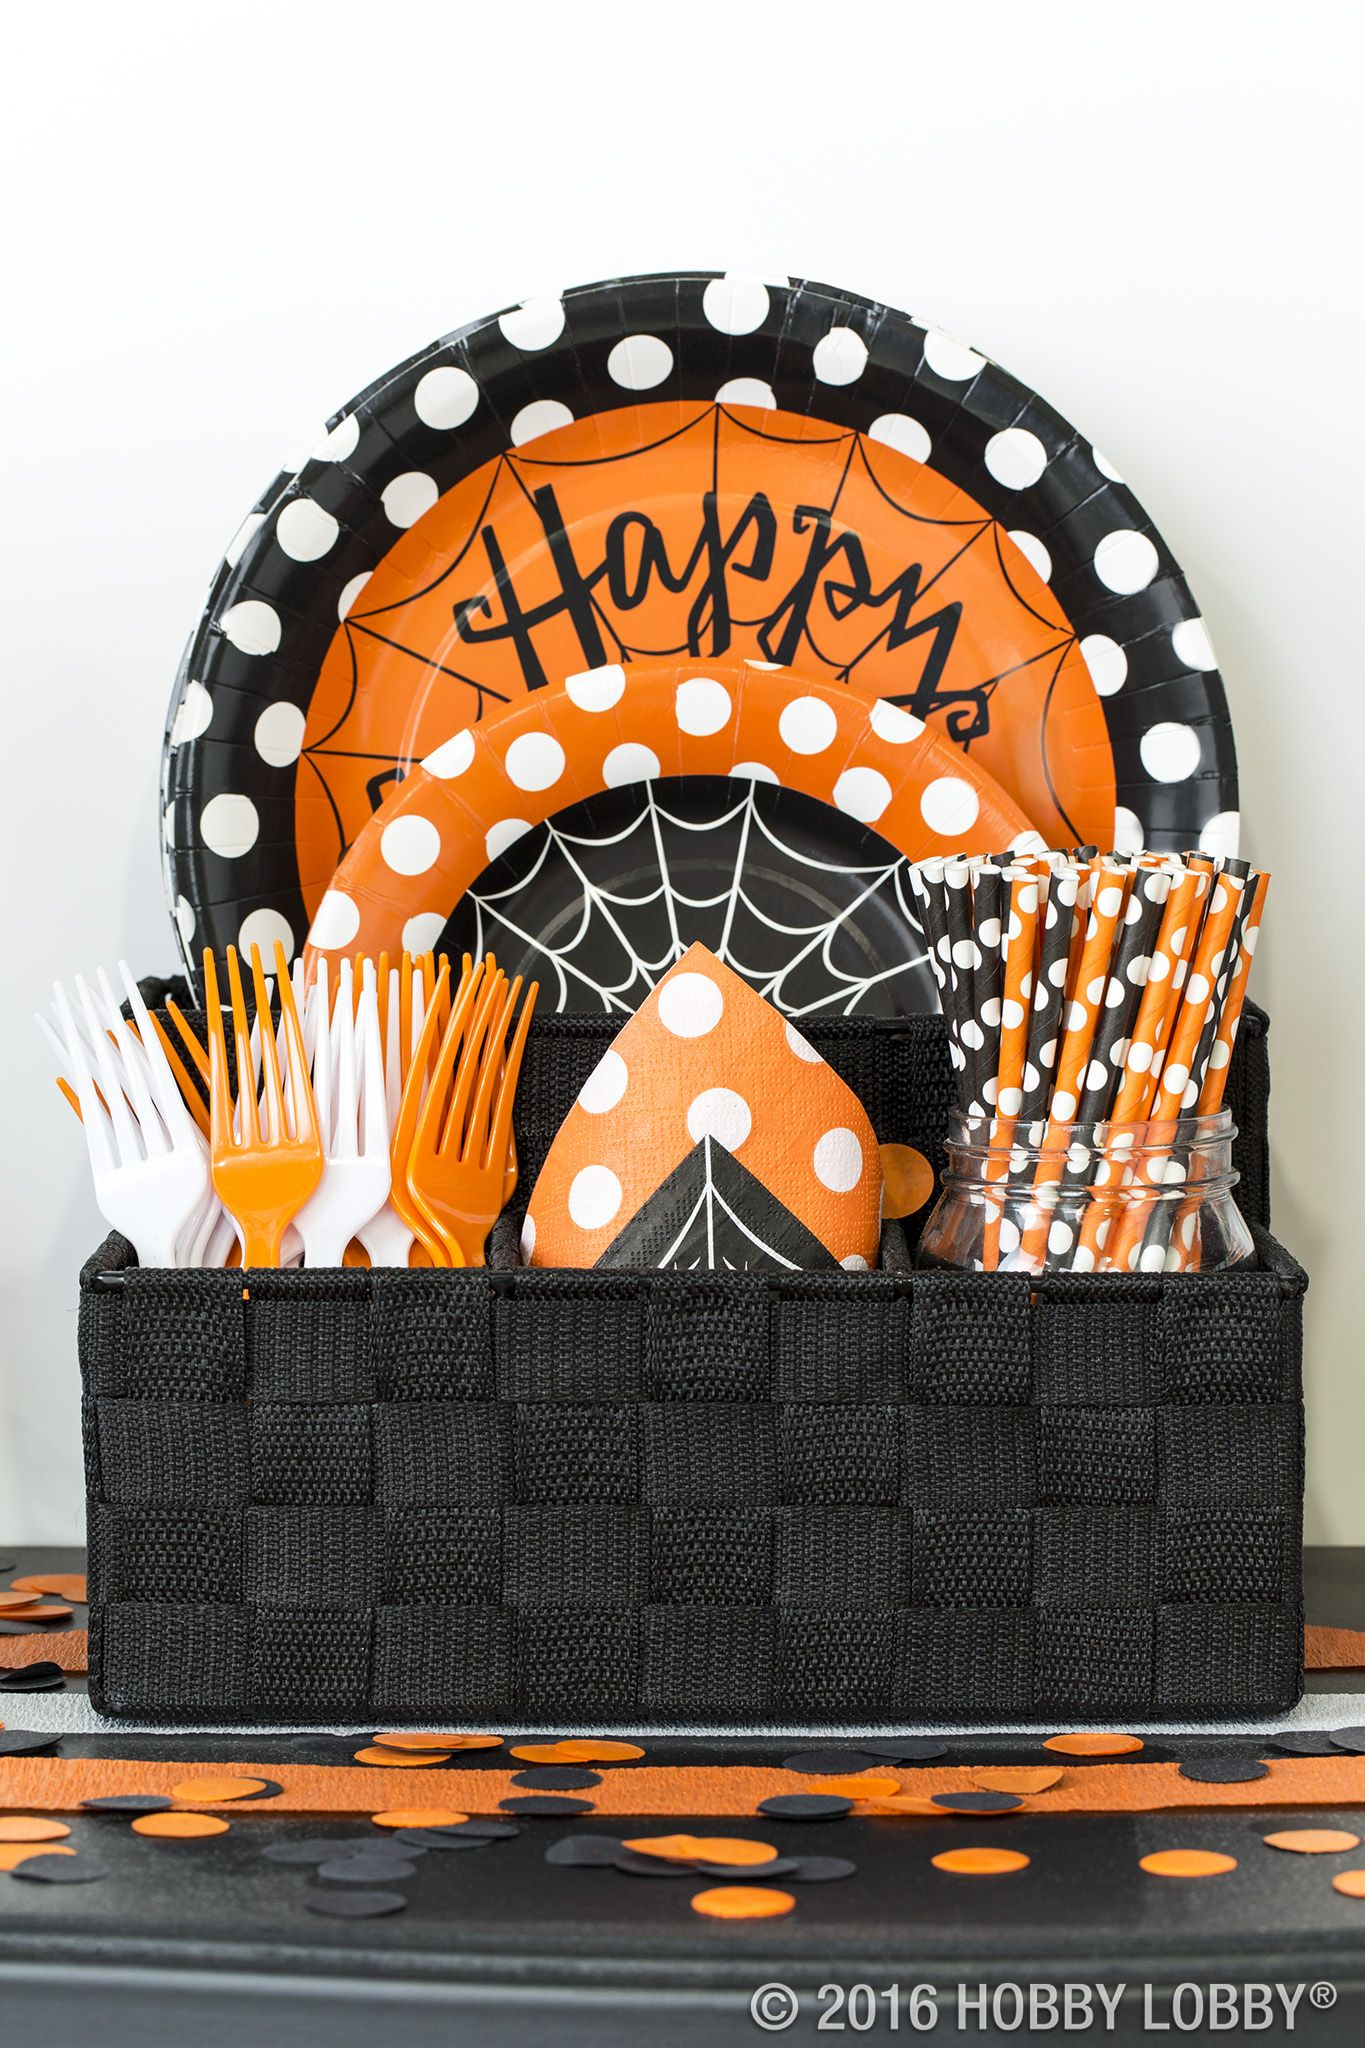 Set the scene this Halloween with spooky-cute party decor - Hobby Lobby Halloween Decorations